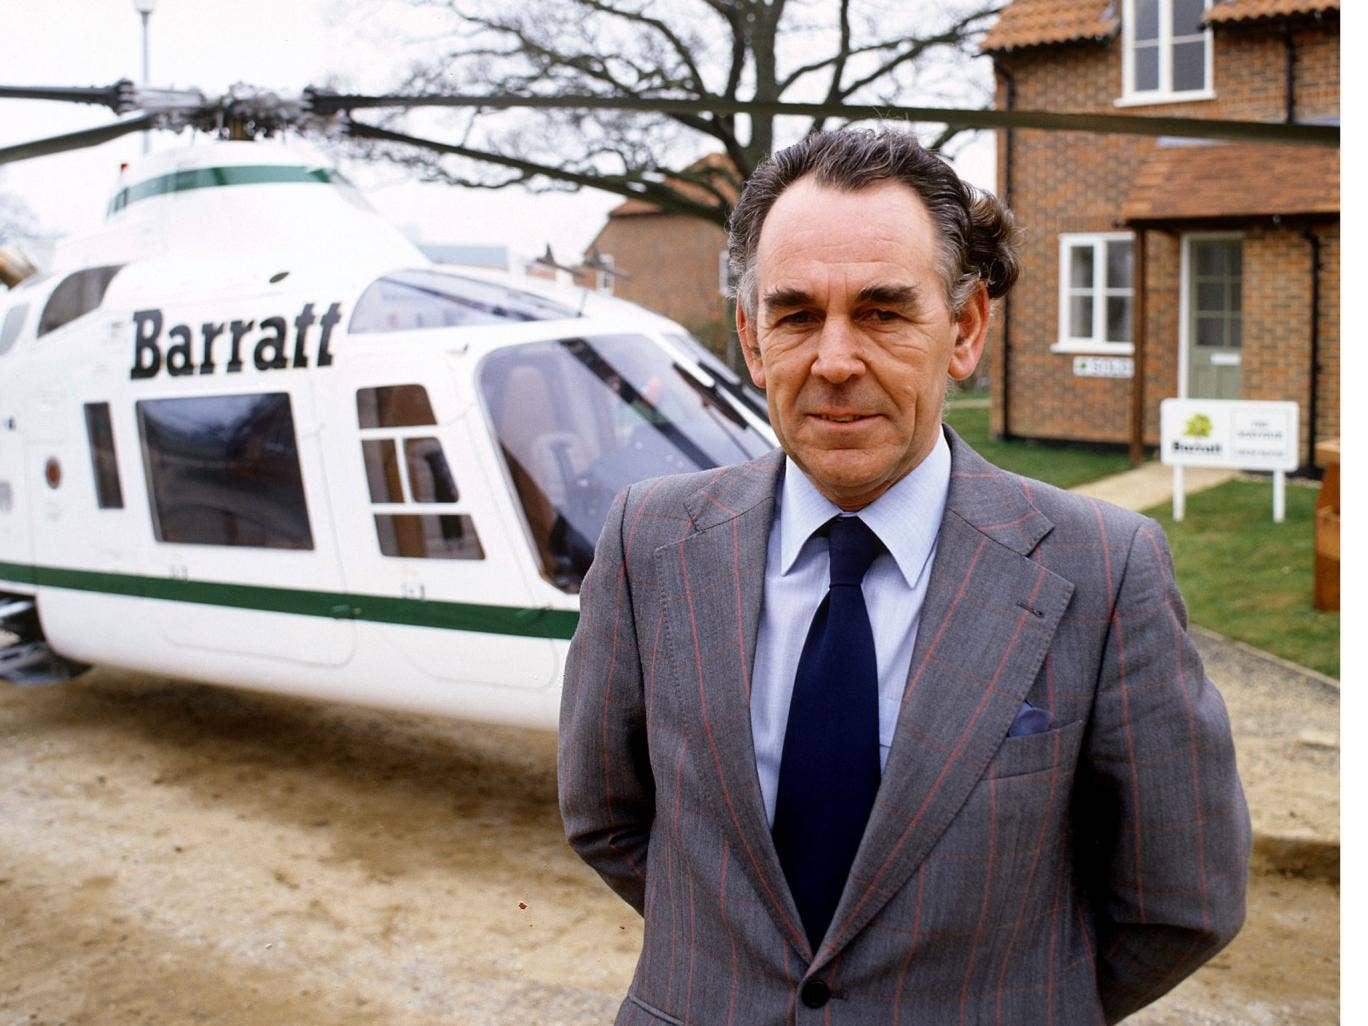 Barratt in 1996 with one of the company helicopters that famously featured in television commercials